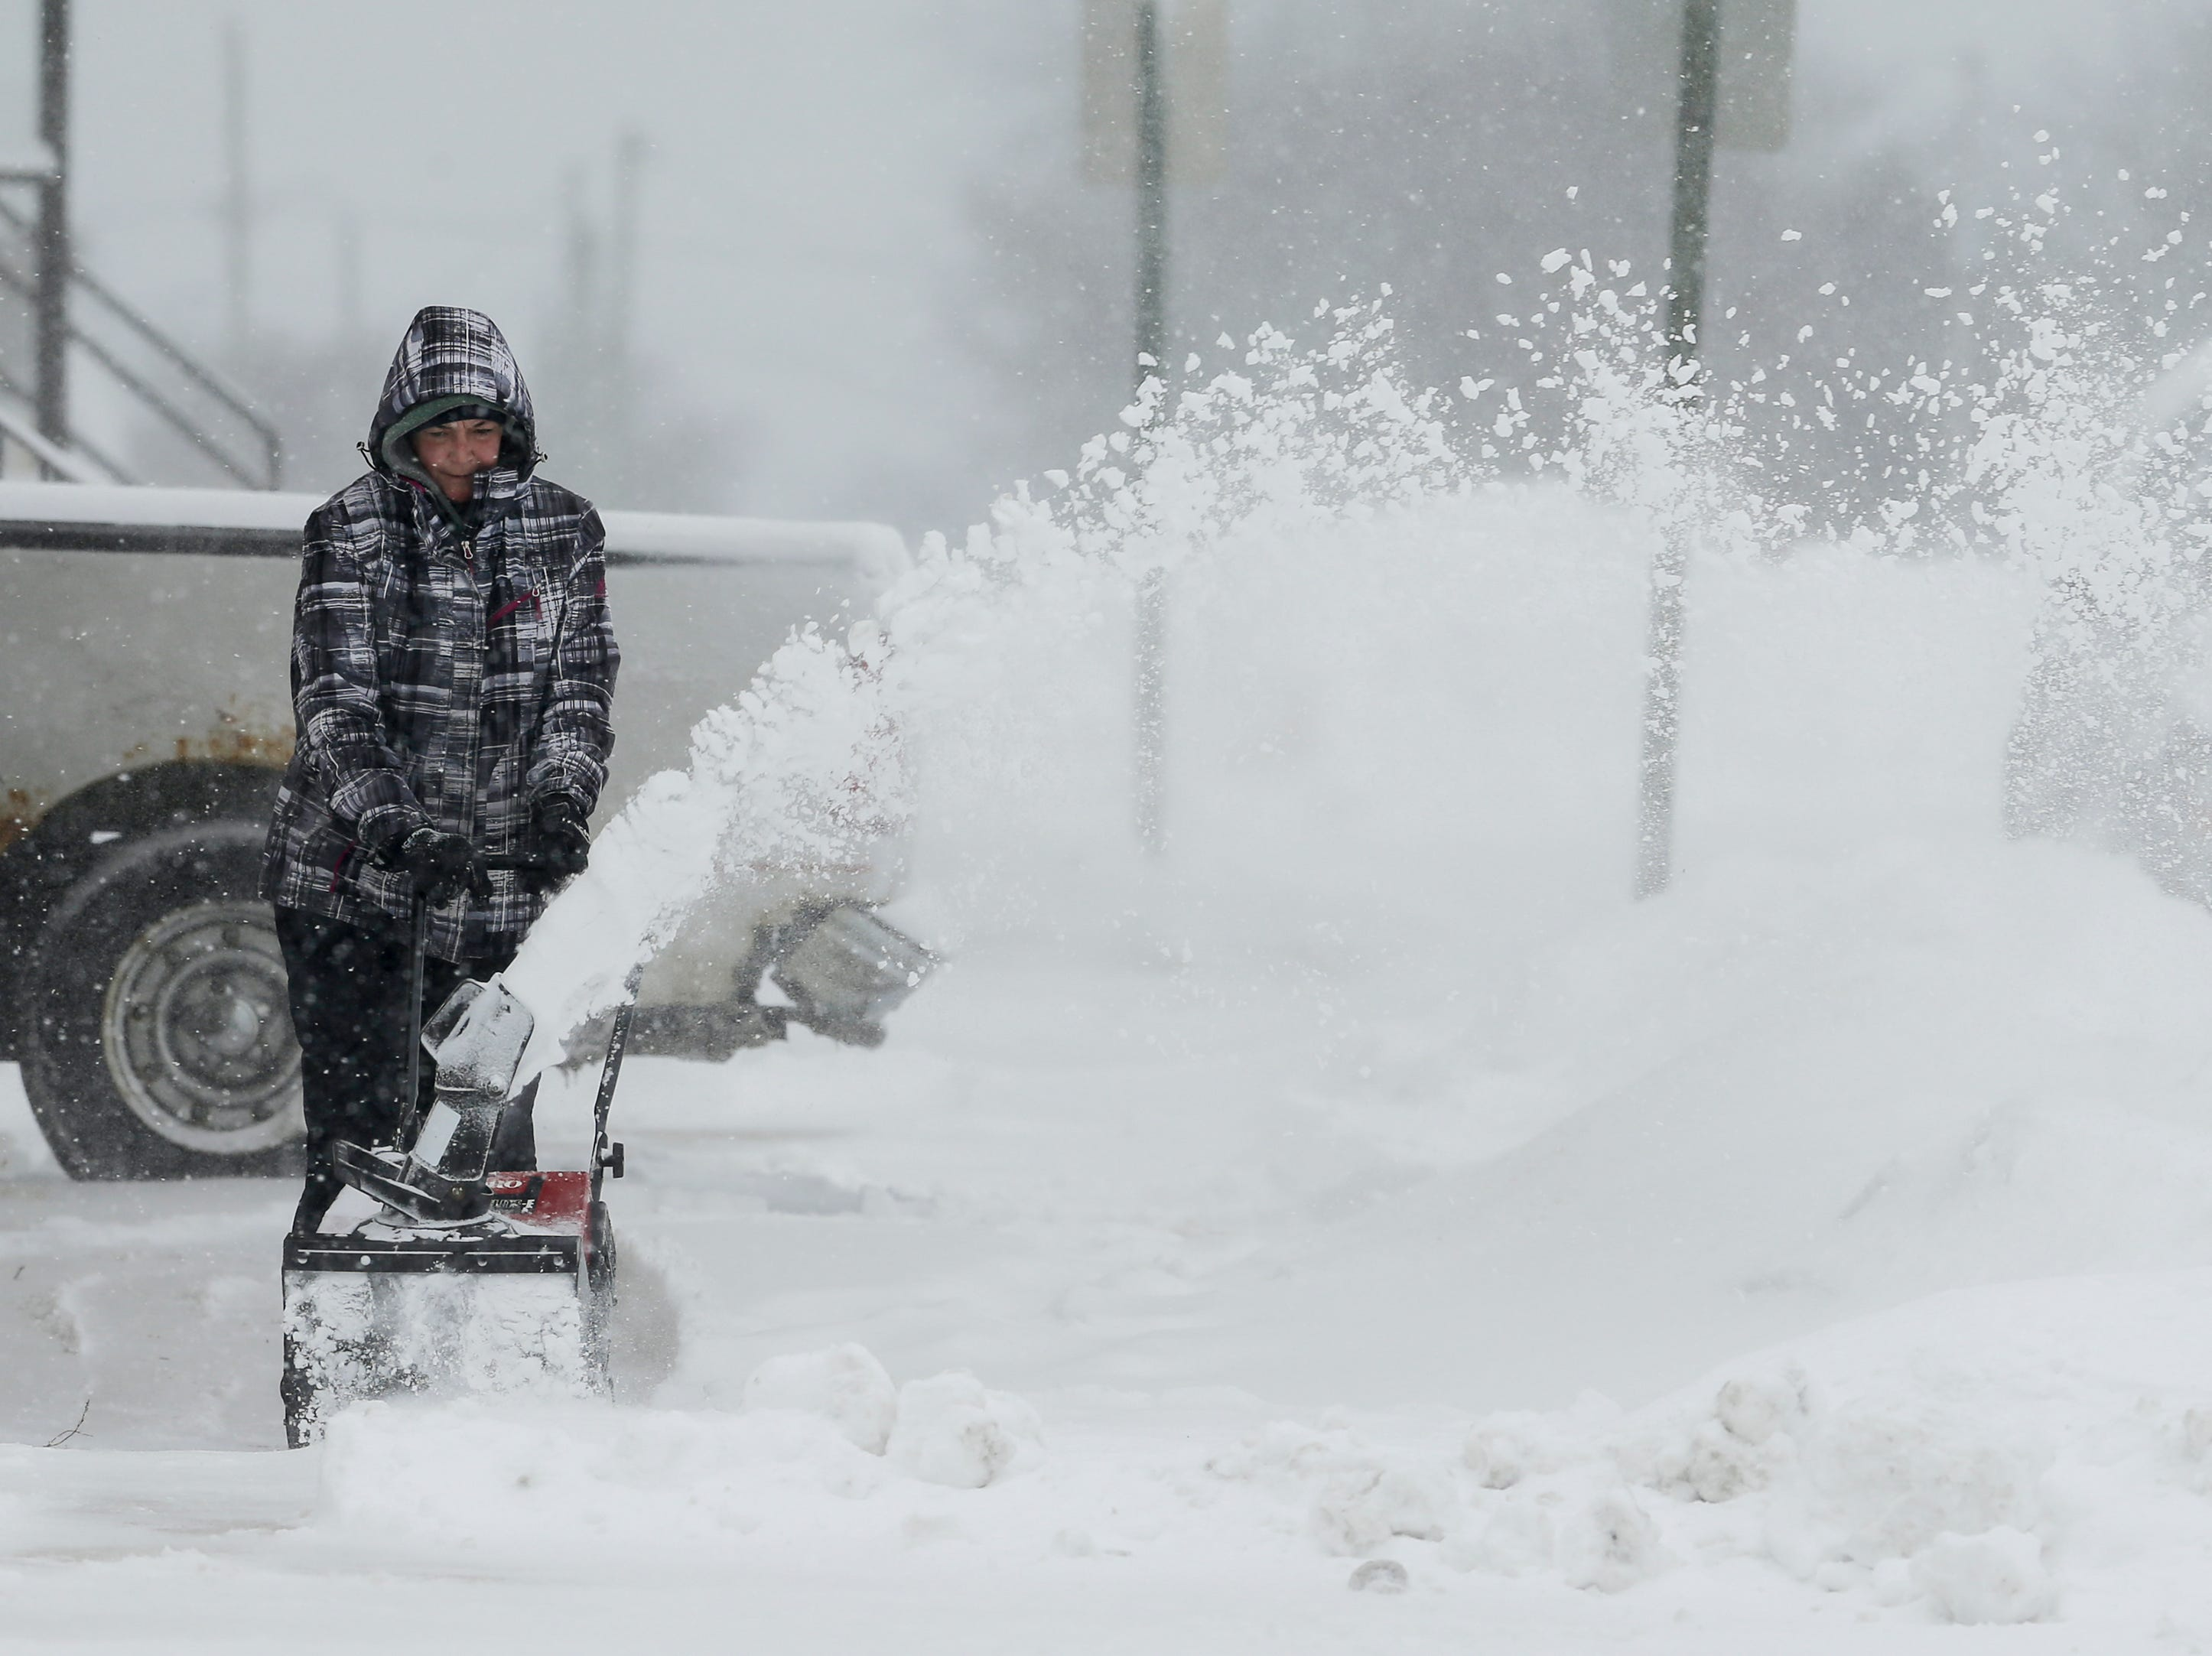 Tina Christman, of Two Rivers, clears snow from her sidewalk during a snowstorm Wednesday, January 23, 2019, in Two Rivers, Wis. Joshua Clark/USA TODAY NETWORK-Wisconsin